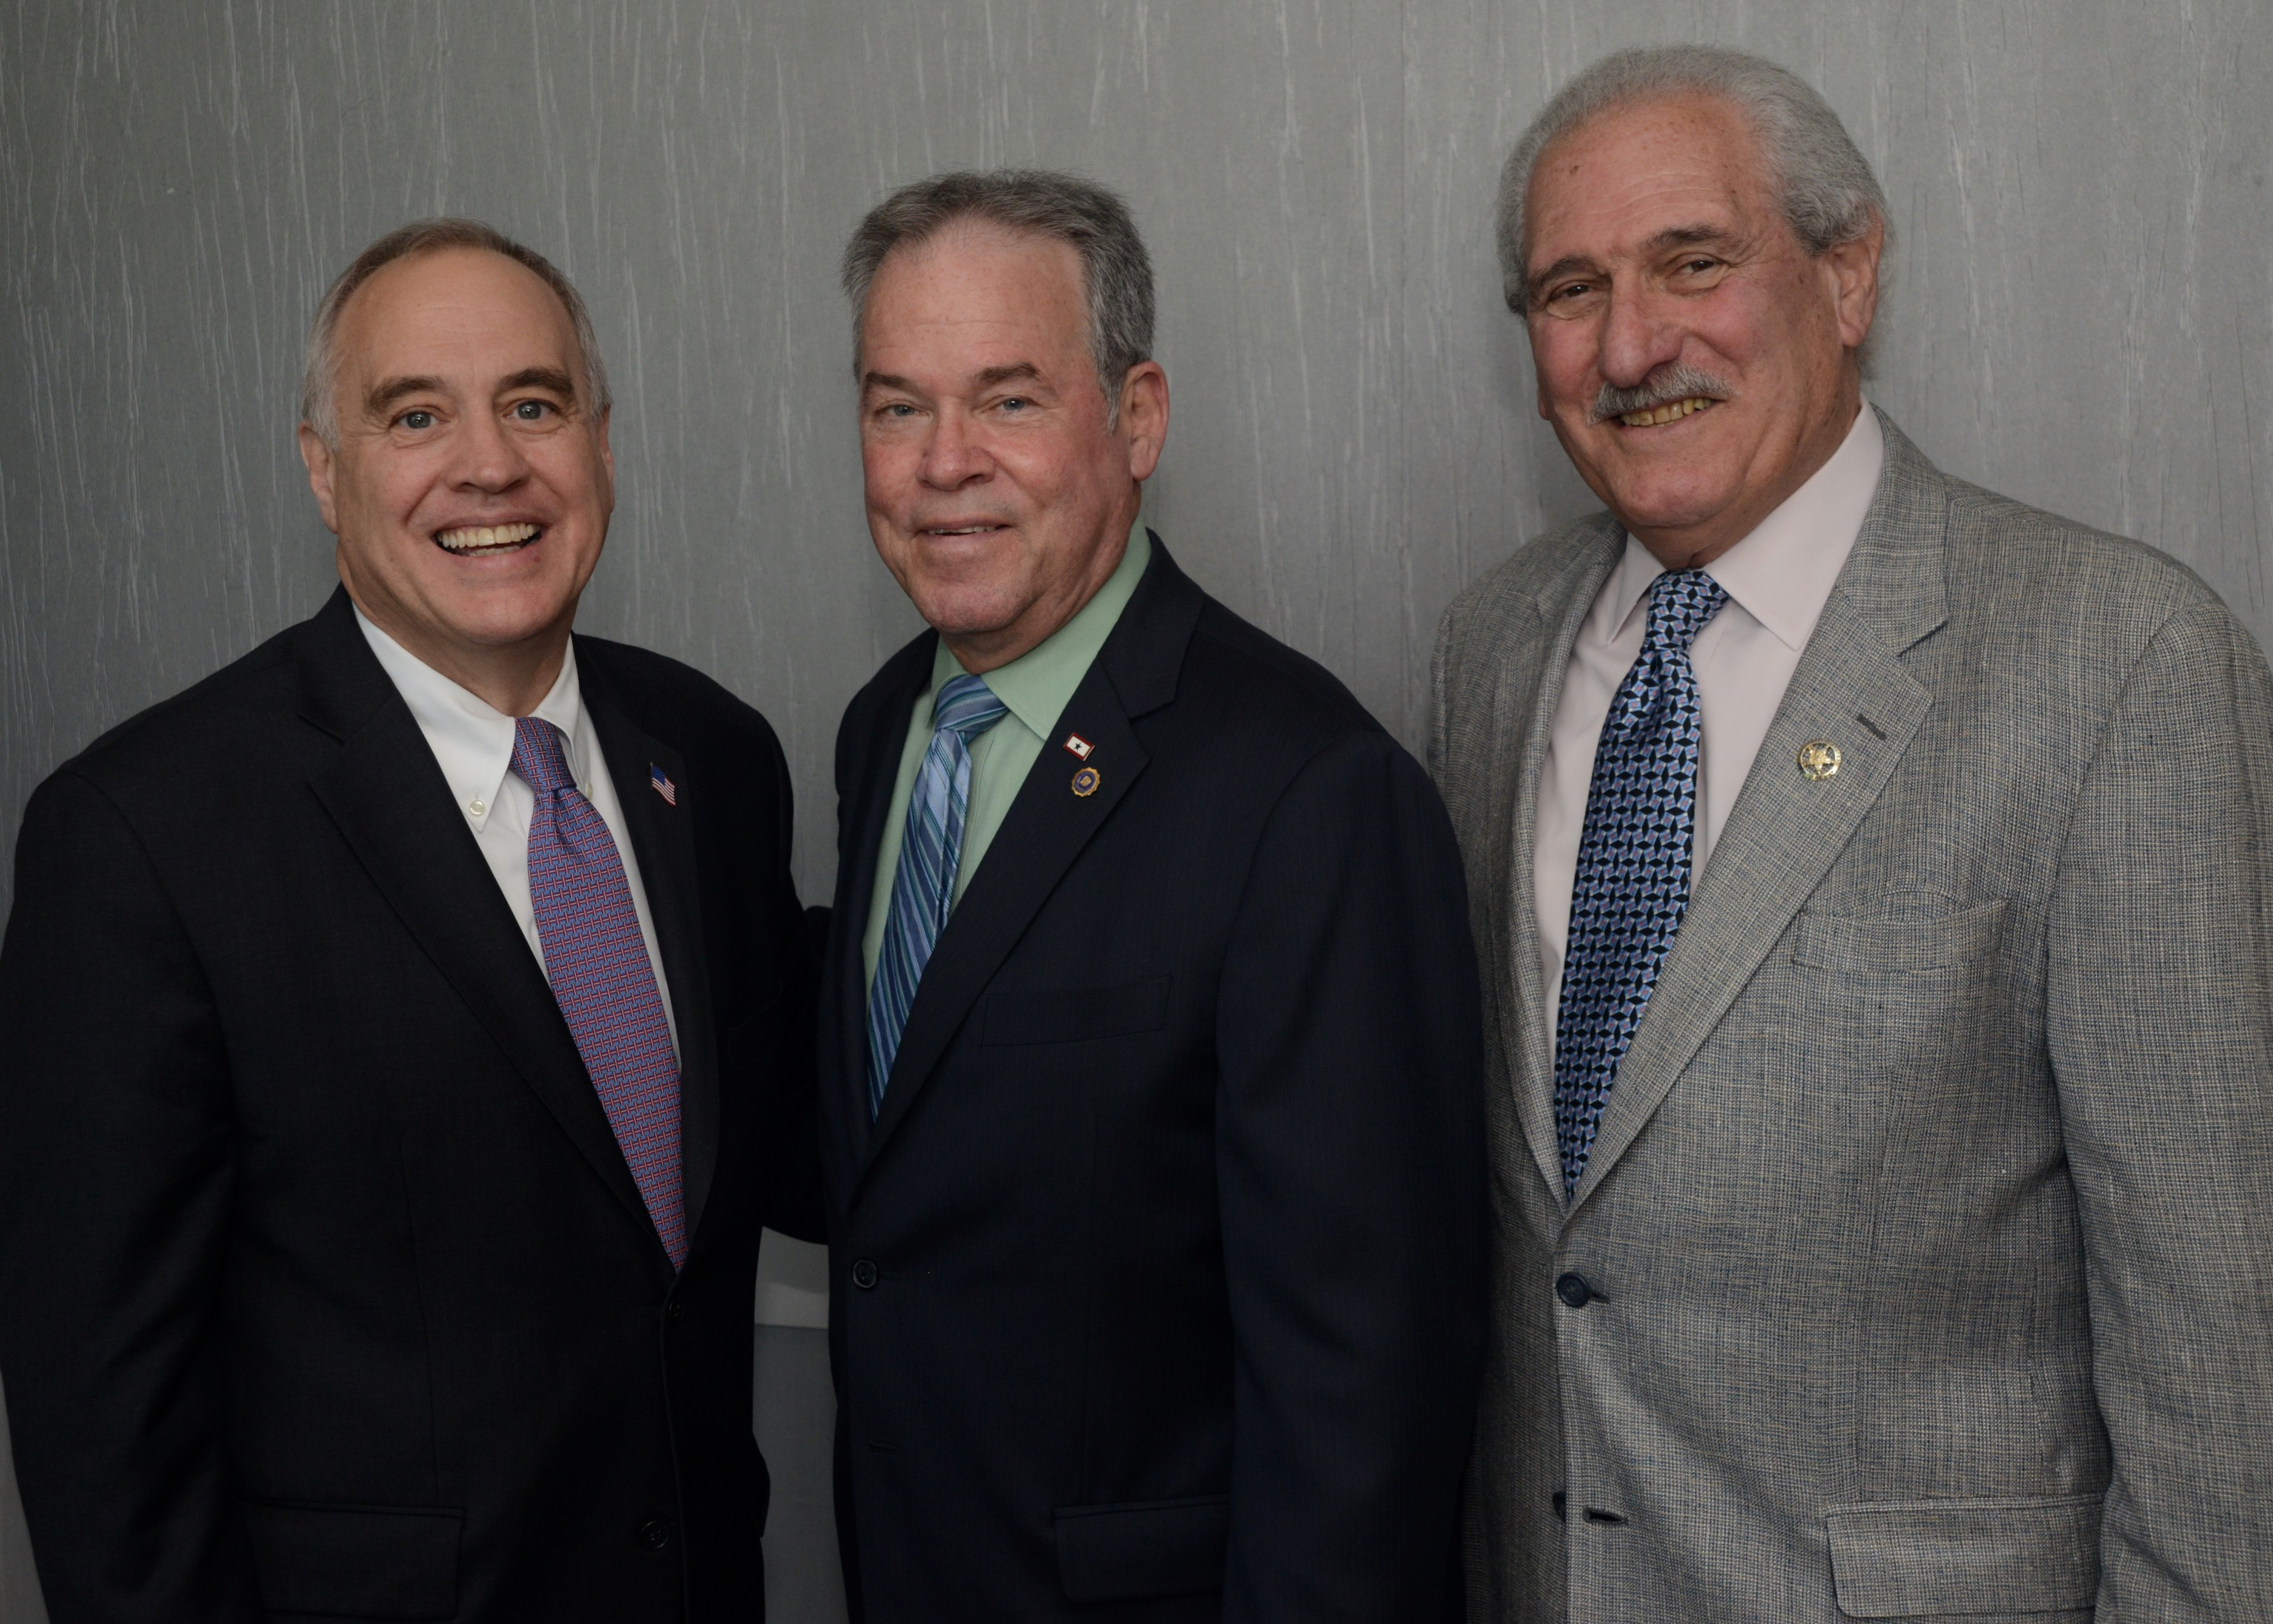 State Comptroller says Rockland still faces fiscal stress, particularly in Town of Ramapo